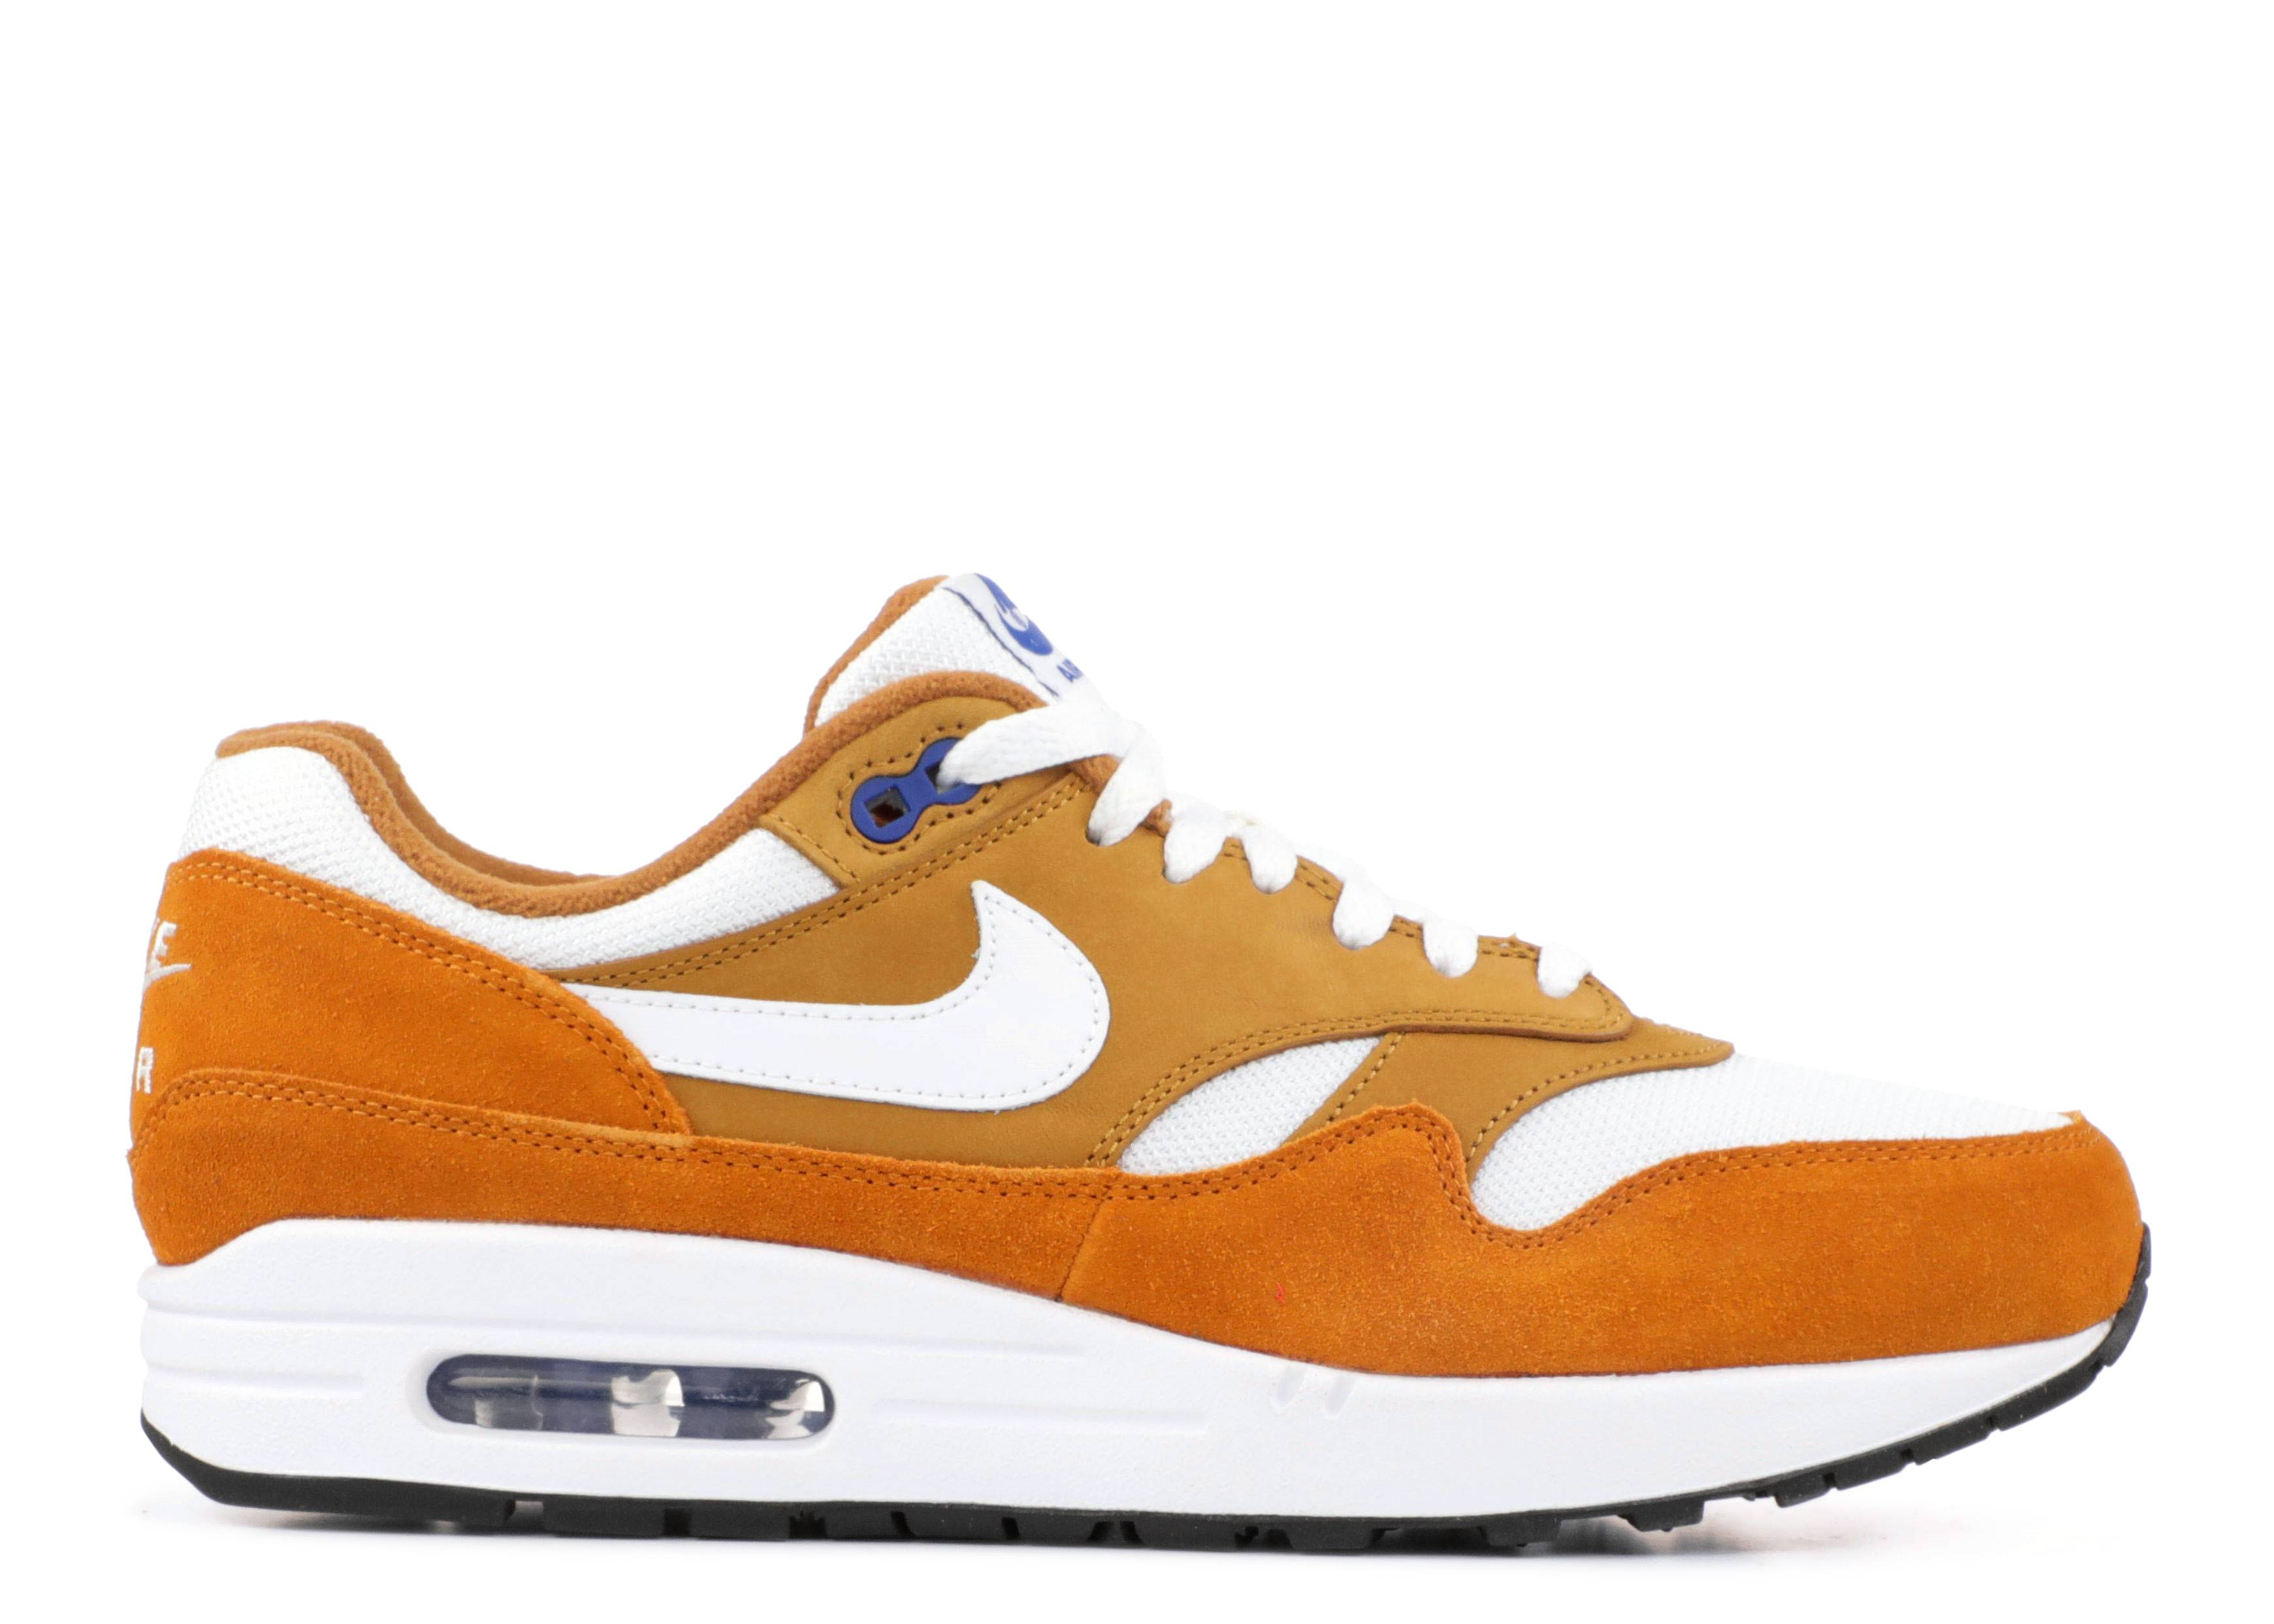 atmos Nike Air Max 1 Curry 908366 700 Release Date Sneaker